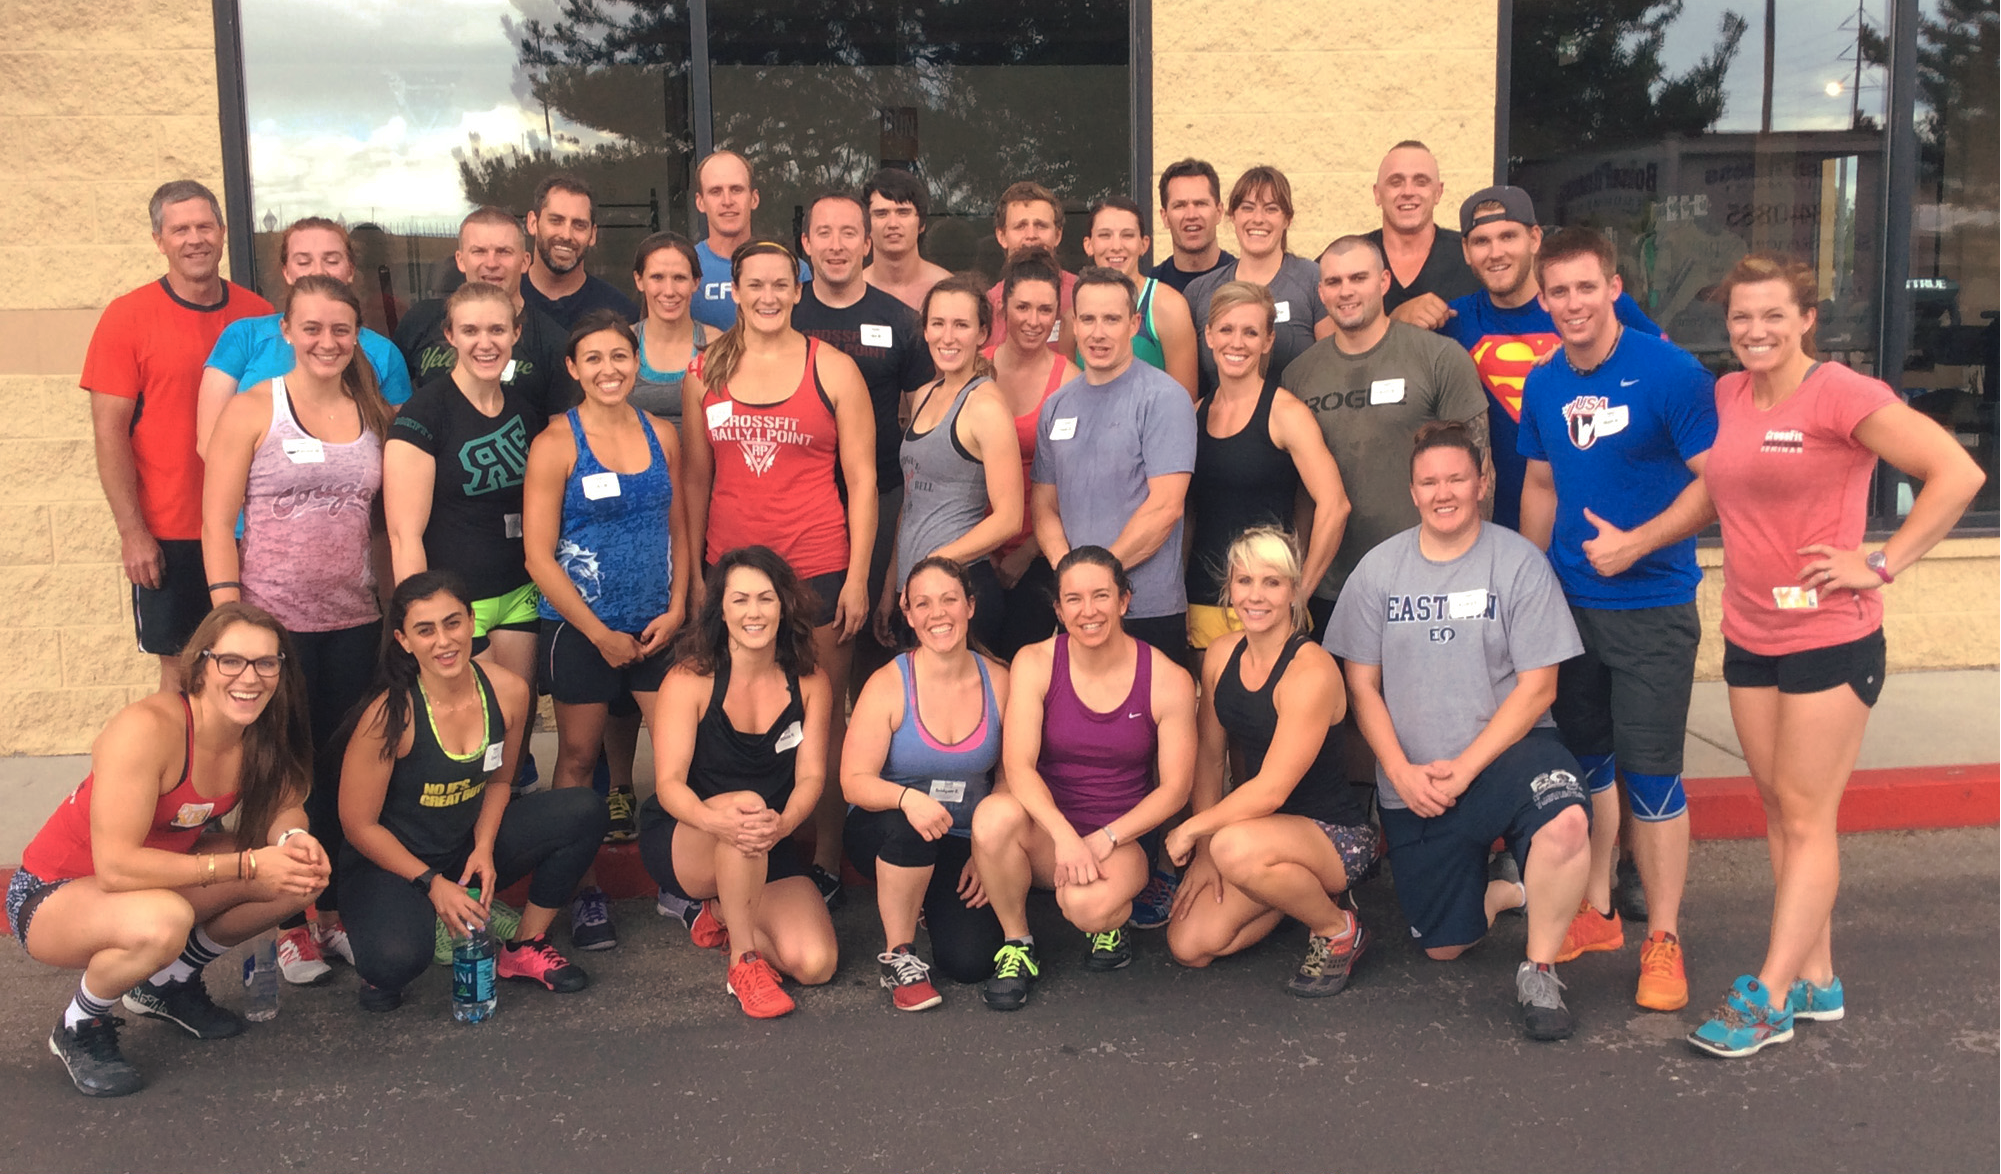 CrossFit Level 1 Class at CrossFit Rally Point. Bridgett is in the front row.